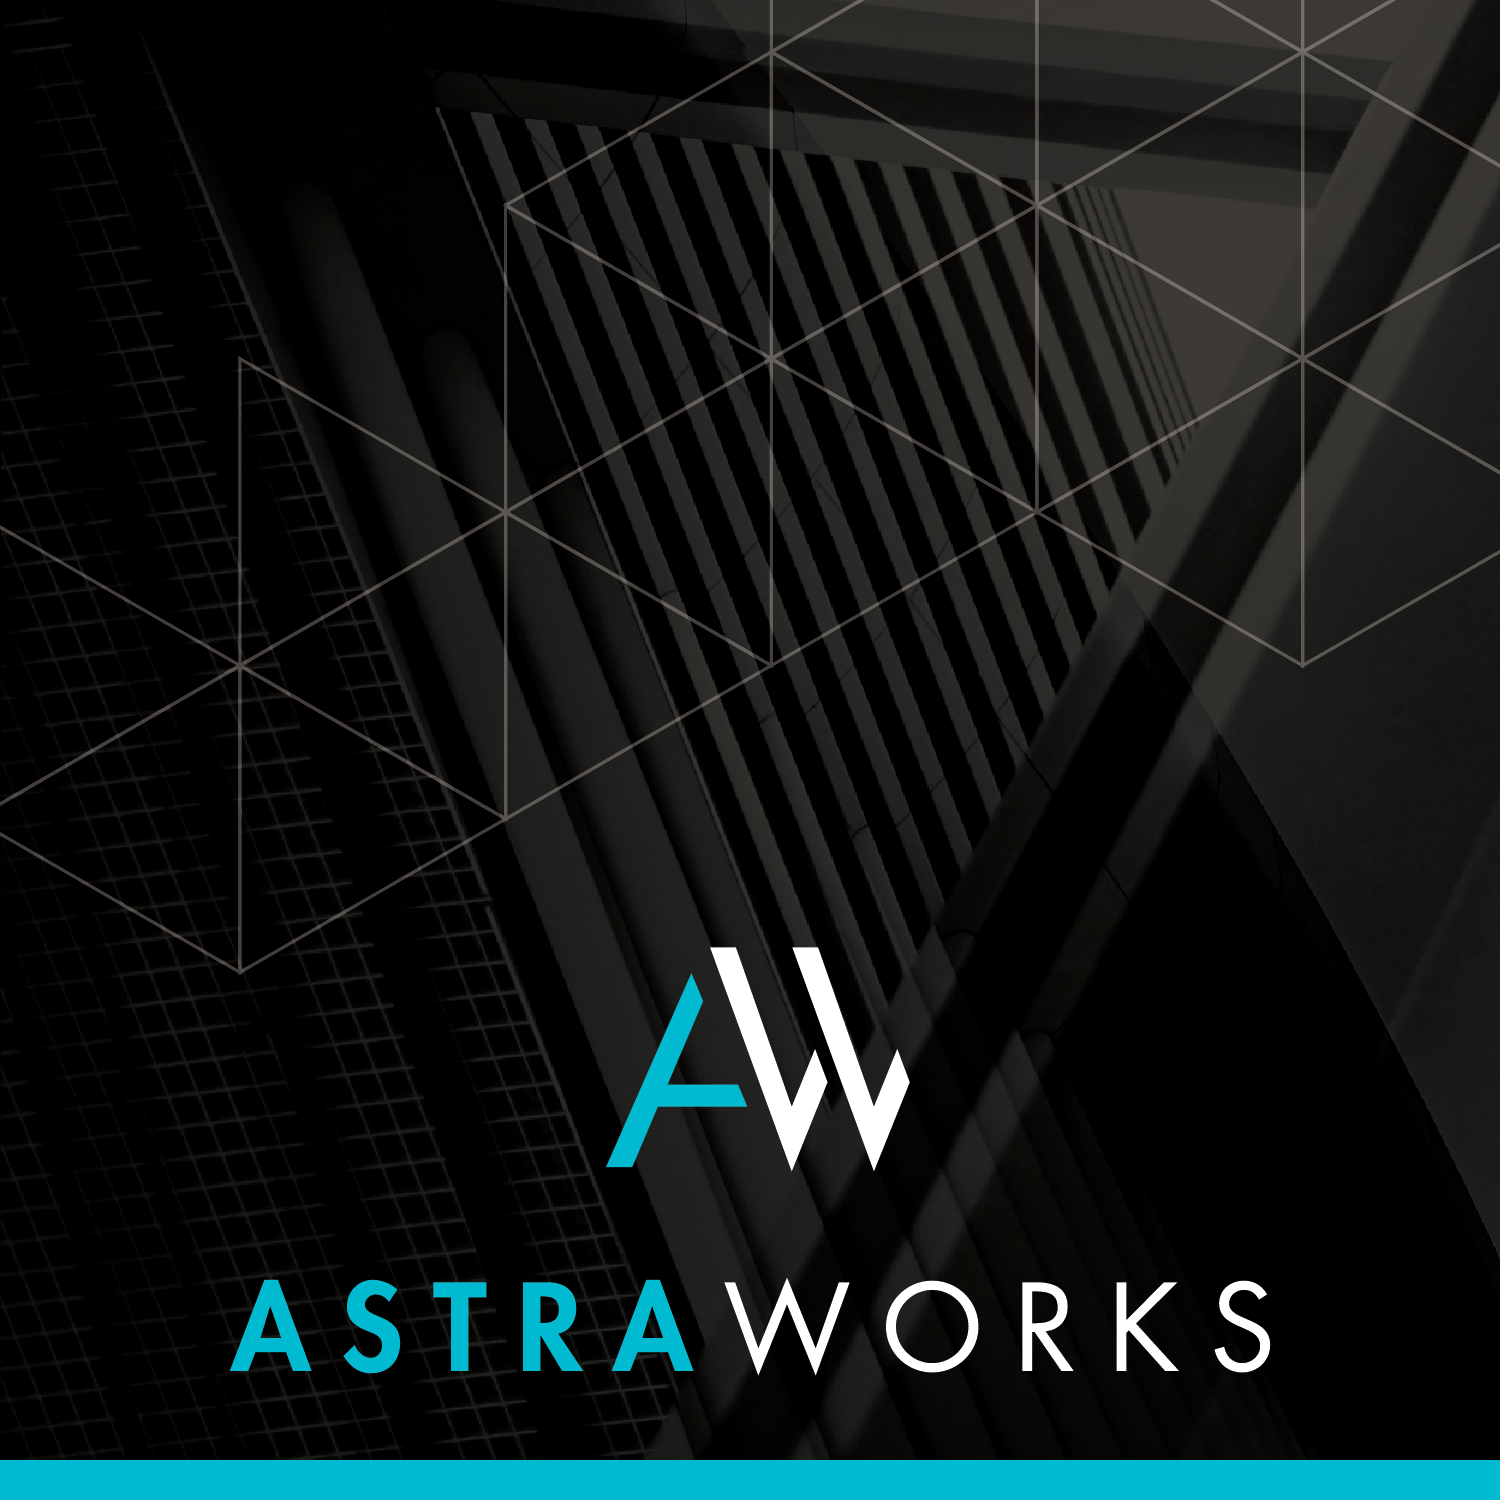 candid.Branded.AstraWorks.Image.png